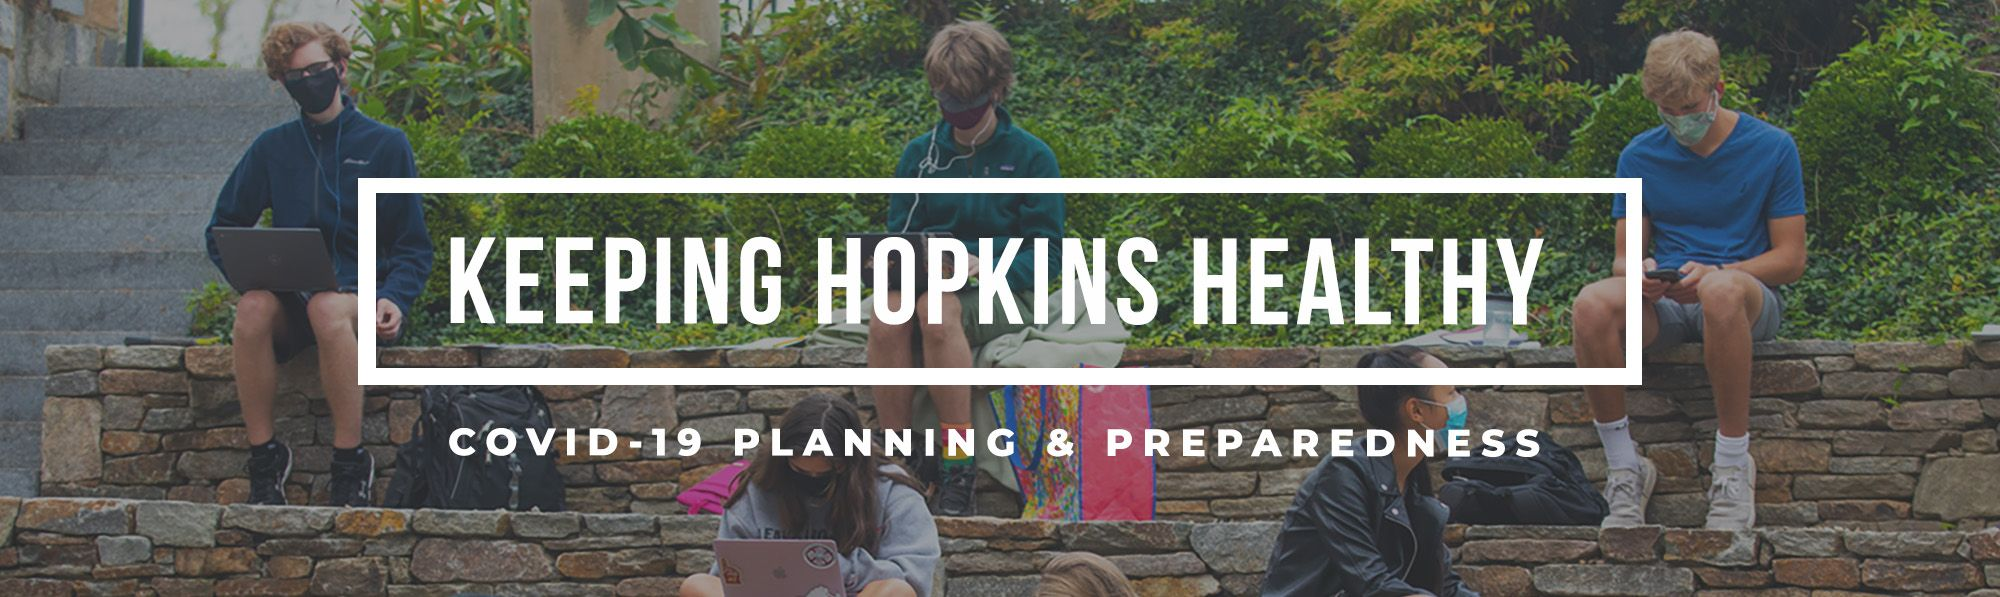 Reopening Hopkins